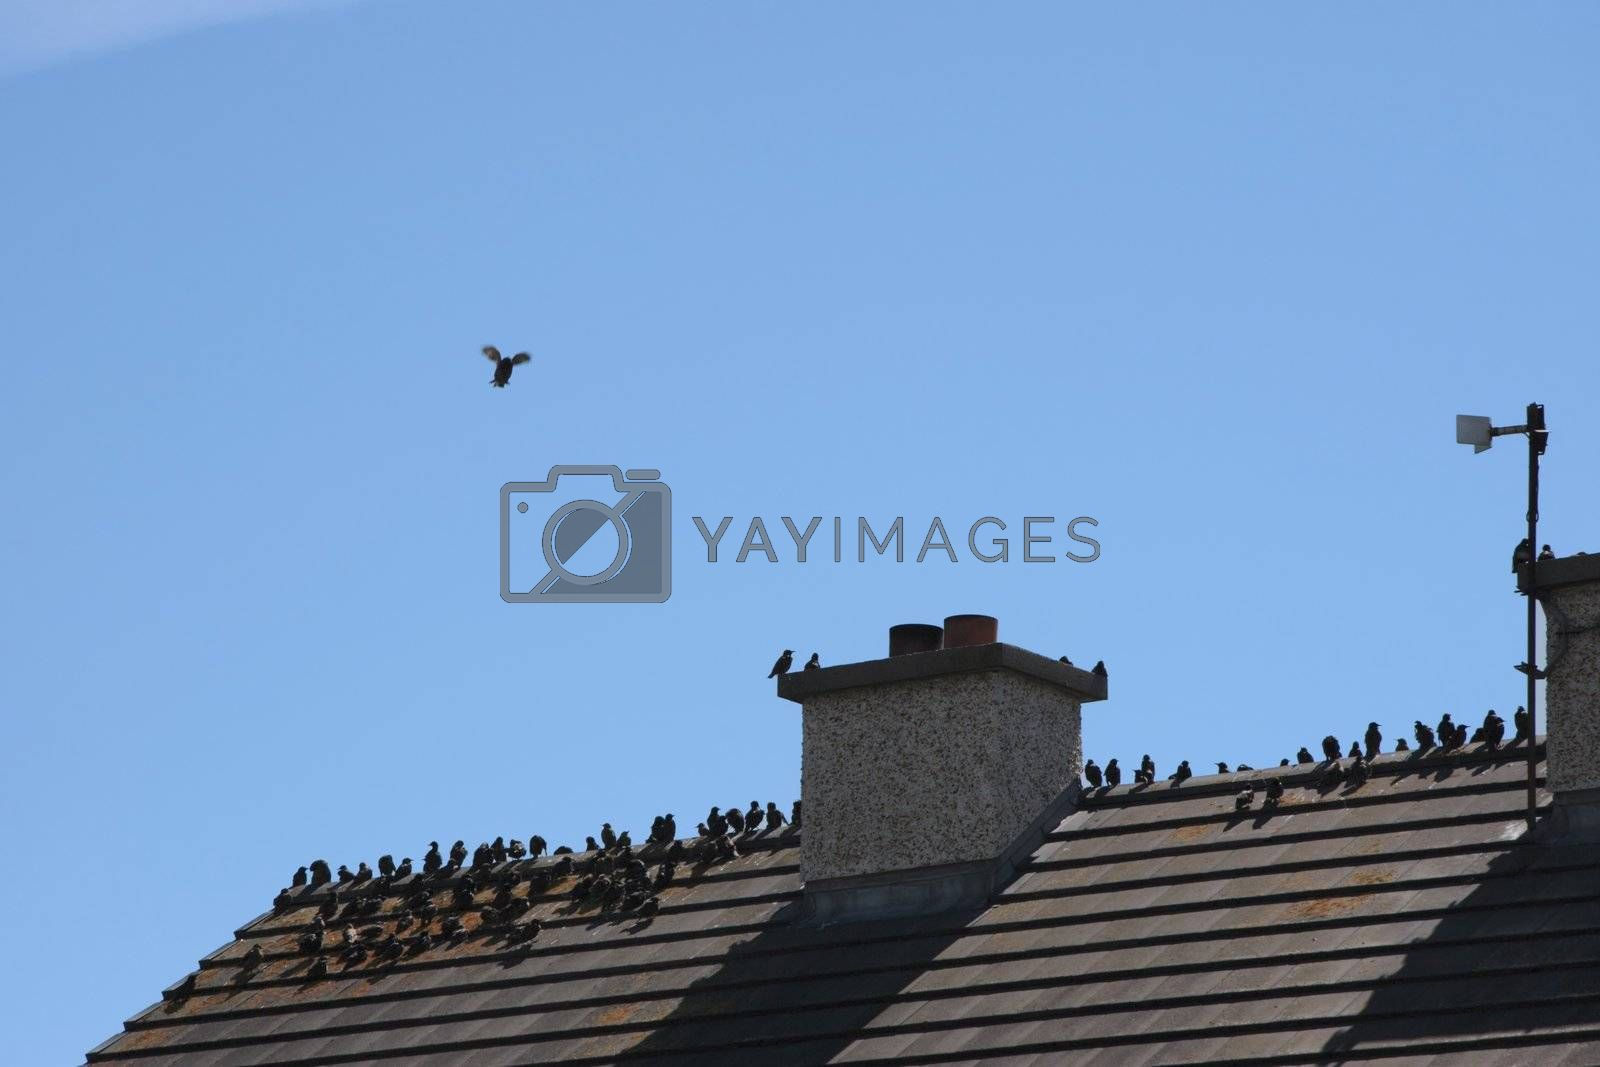 birds on a roof vi by morrbyte